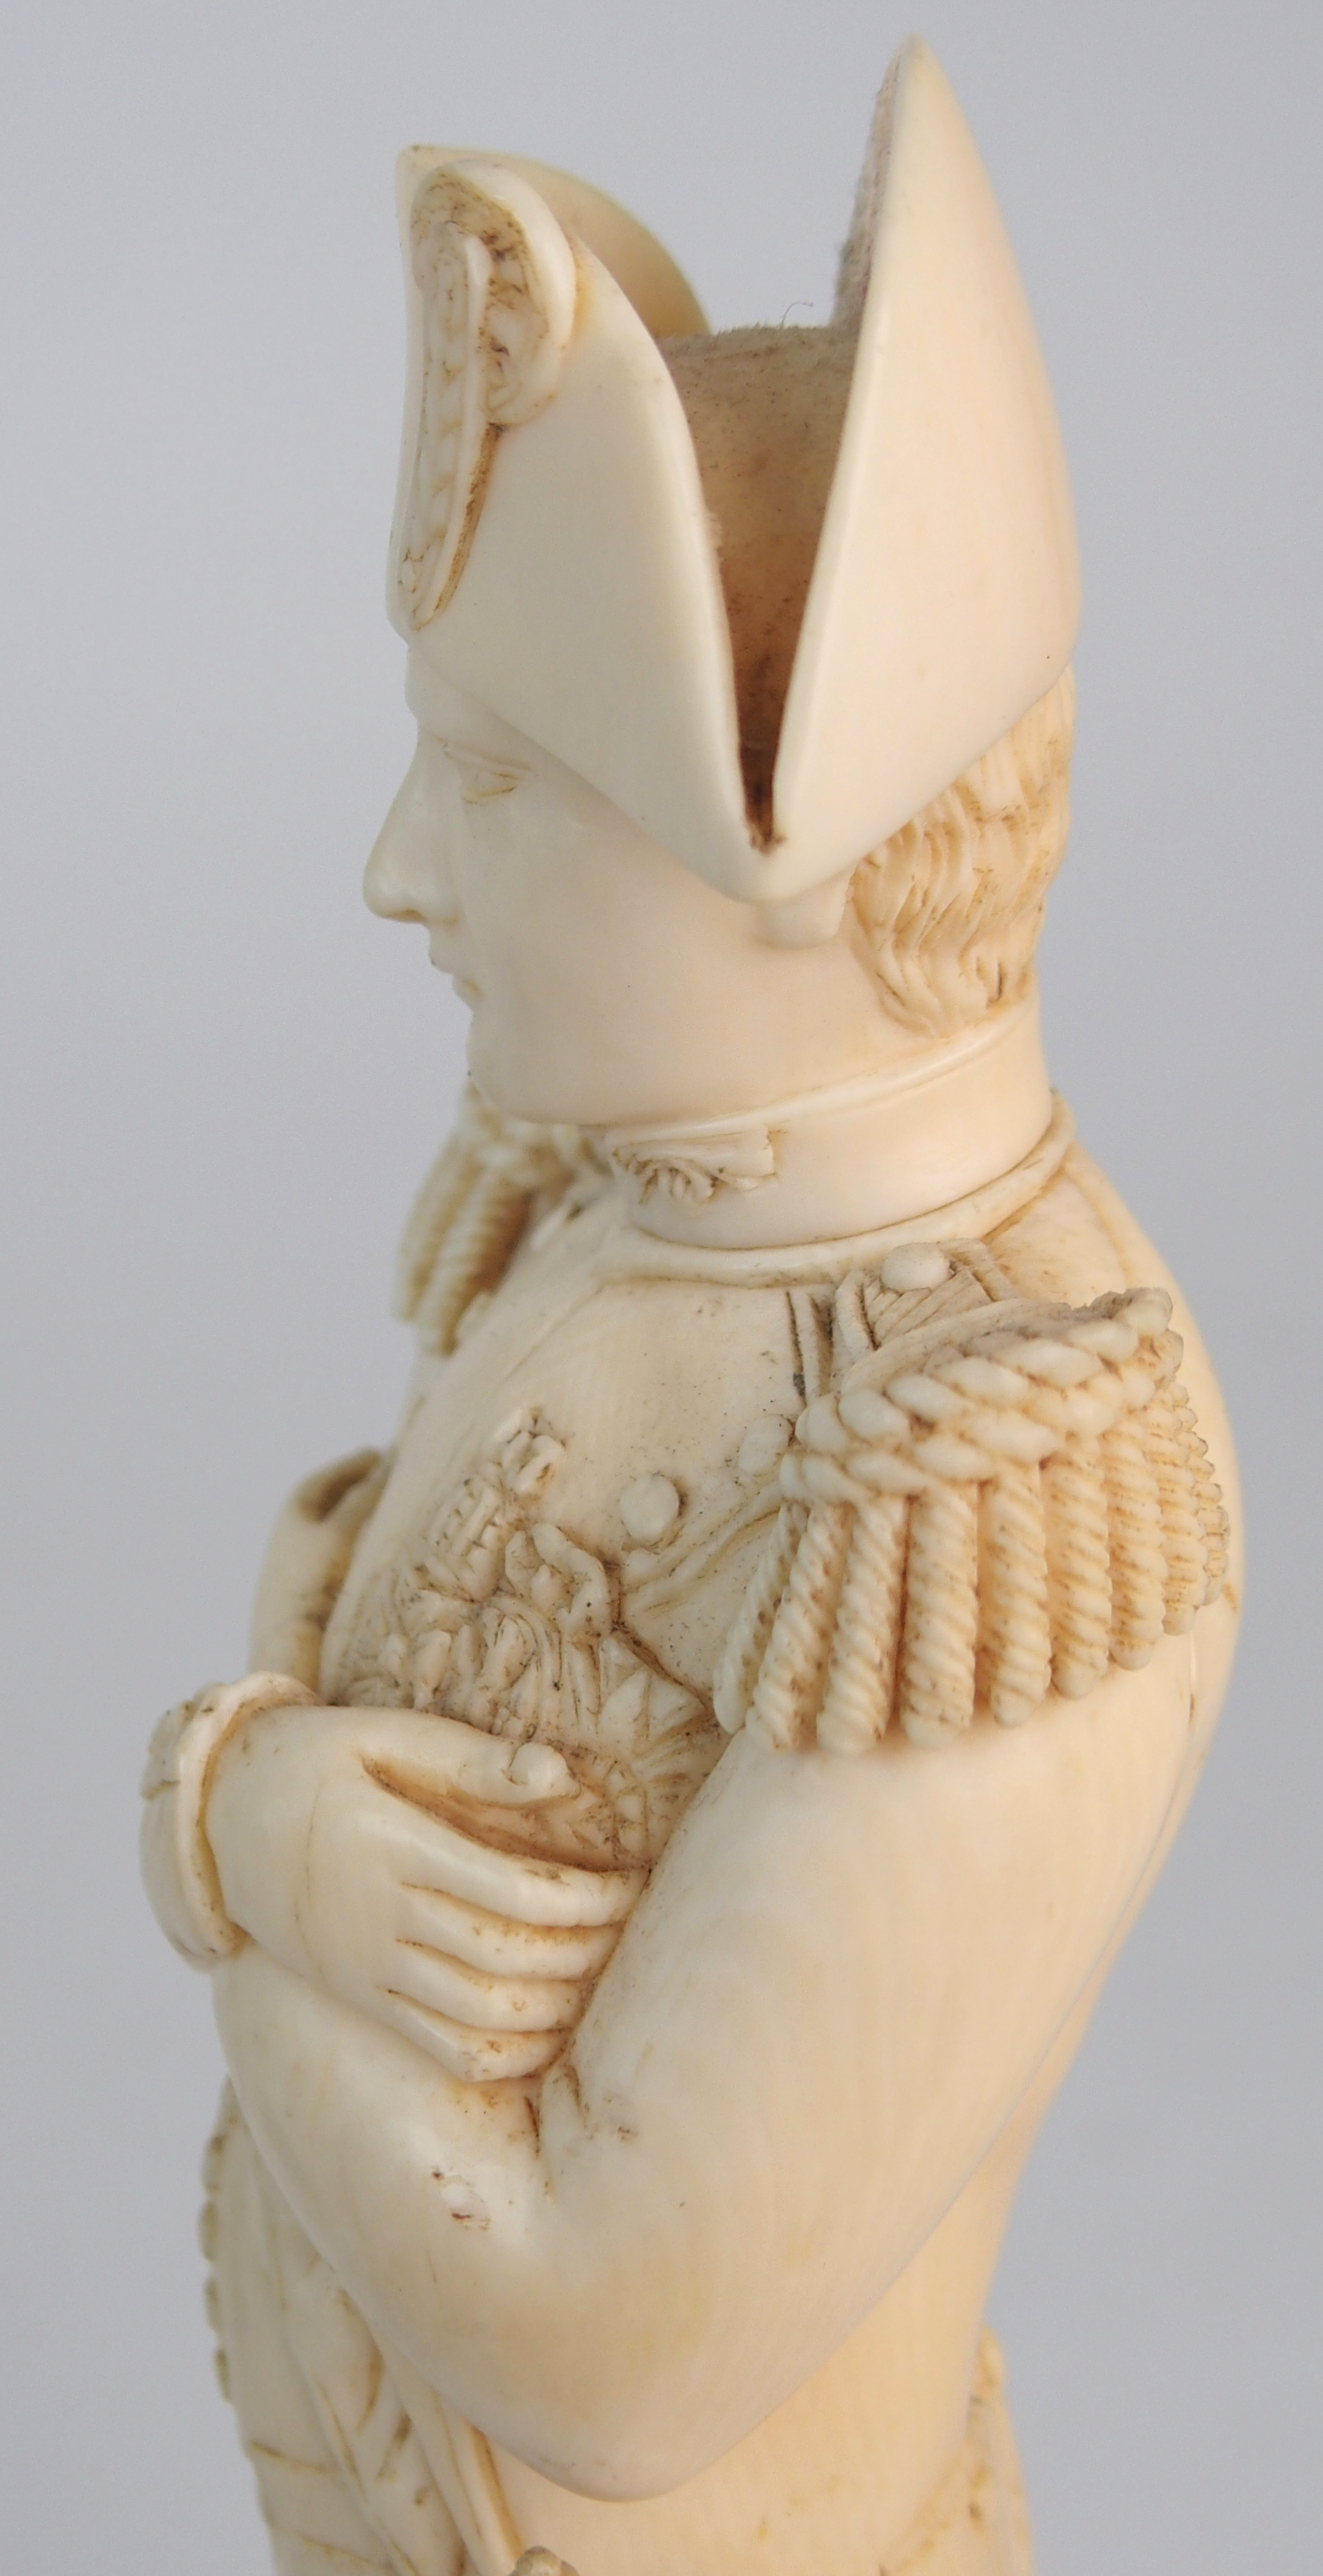 A LATE 19TH/EARLY 20TH CENTURY CARVED IVORY MODEL OF NAPOLEON in uniform with crossed arms, on - Image 2 of 9